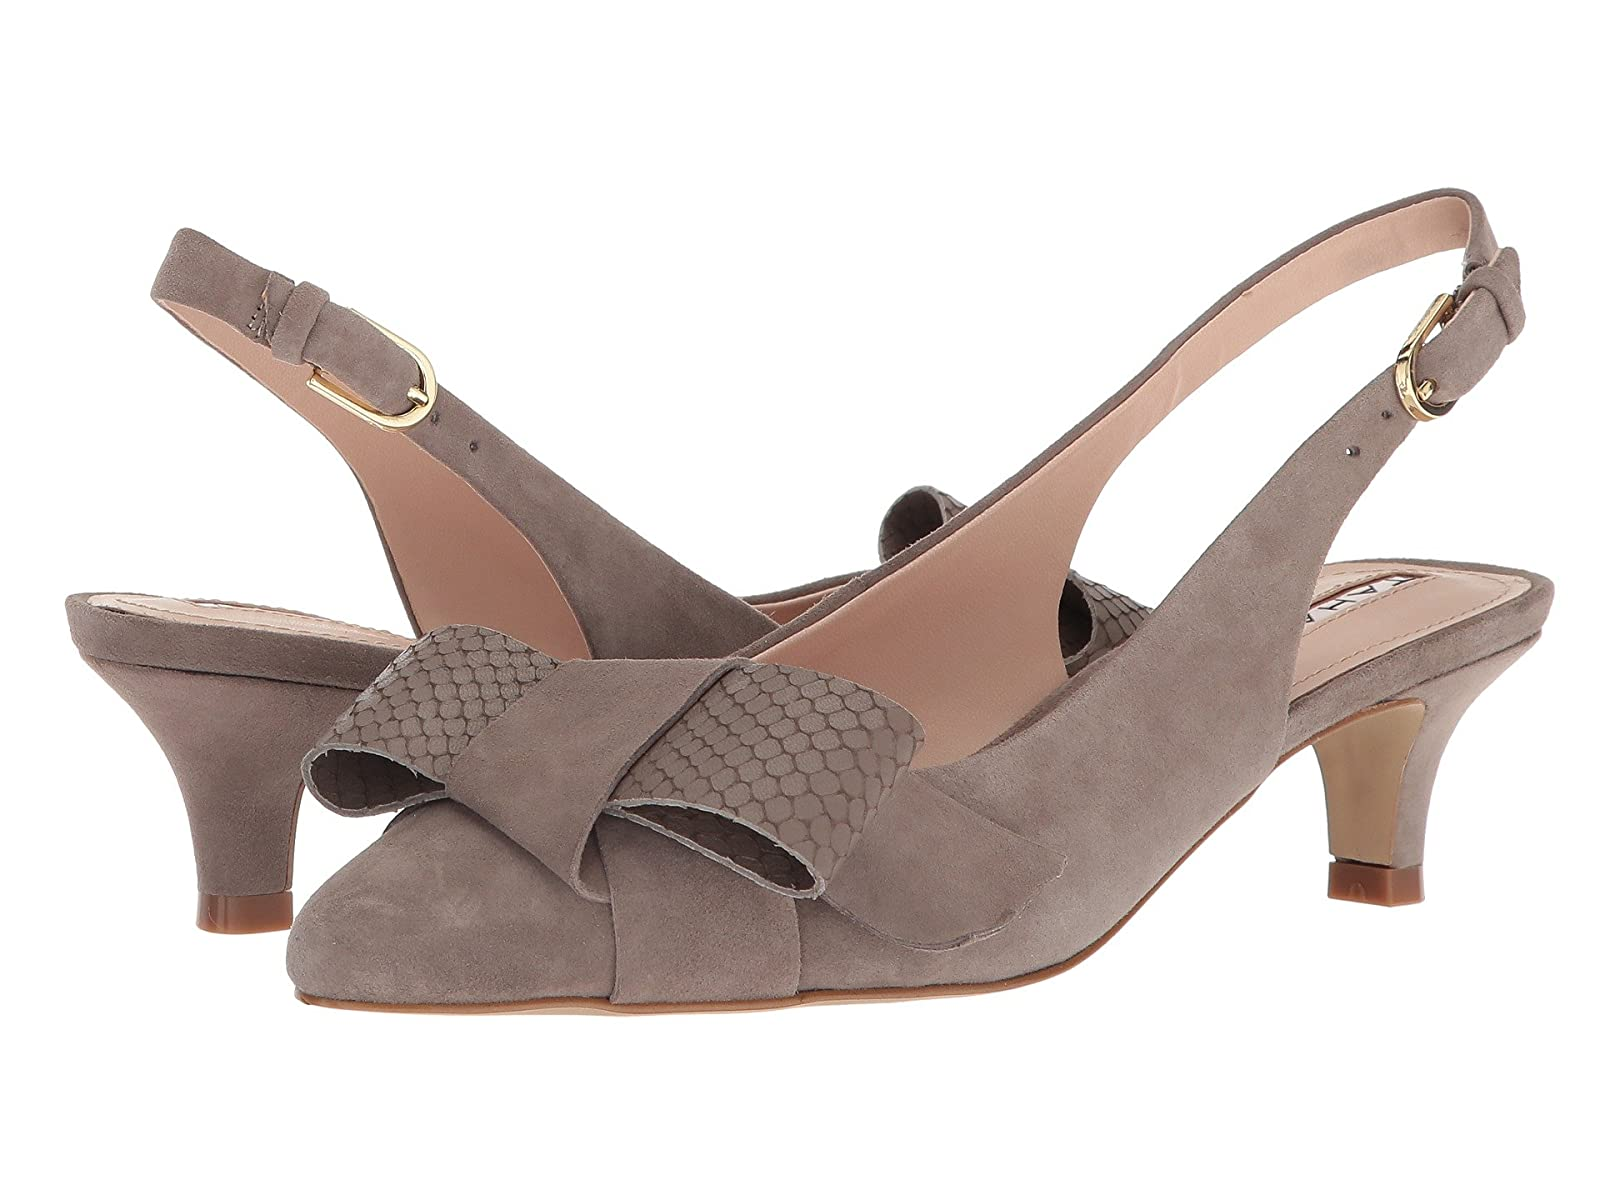 Tahari MaslowCheap and distinctive eye-catching shoes